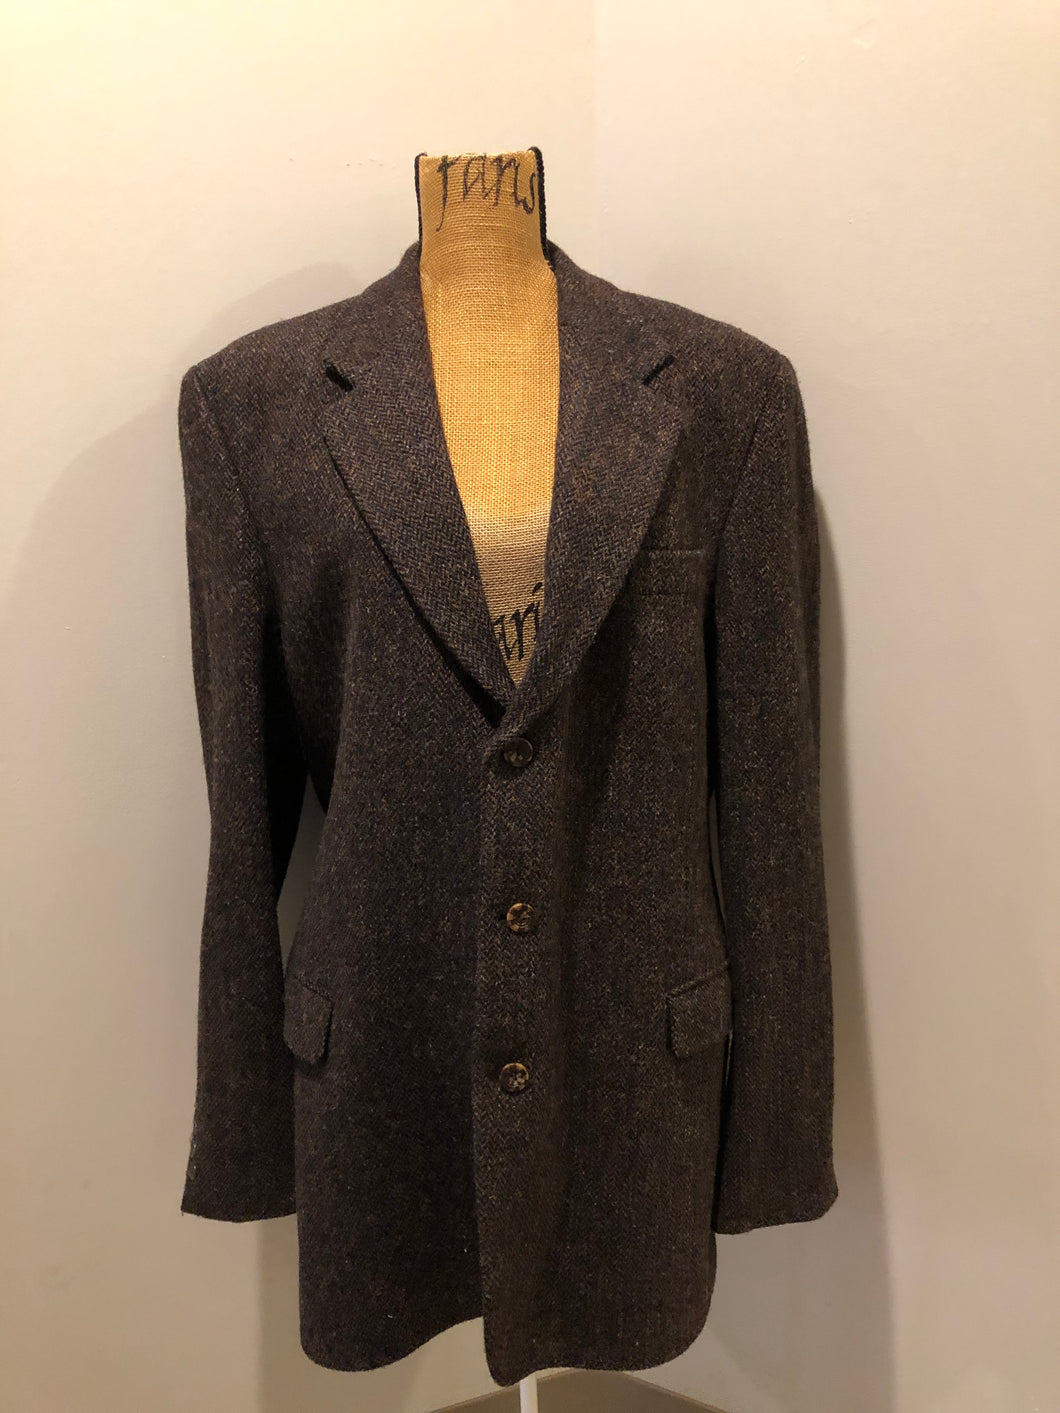 Harris Tweed brown and blue herringbone 100% wool jacket. This jacket is a three button, notch lapel with two flap pockets, a breast pocket and three inside pockets. Made in the Czech Republic.